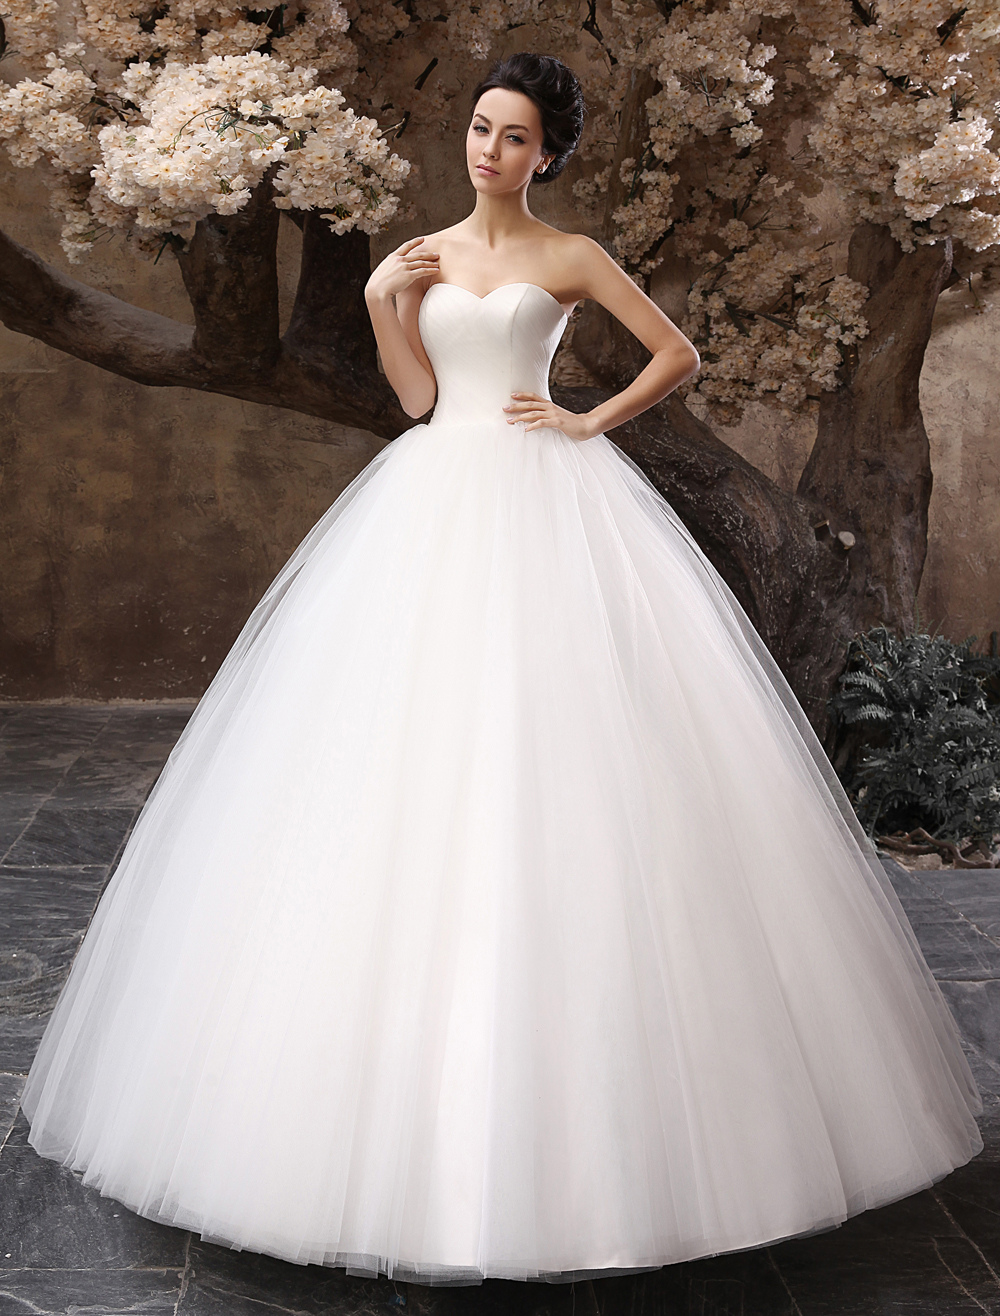 64fa4e04939e0 ... gown white maxi strapless sweetheart neckline tulle floor length bridal  gowns. 12. 45%OFF. Color:Ivory